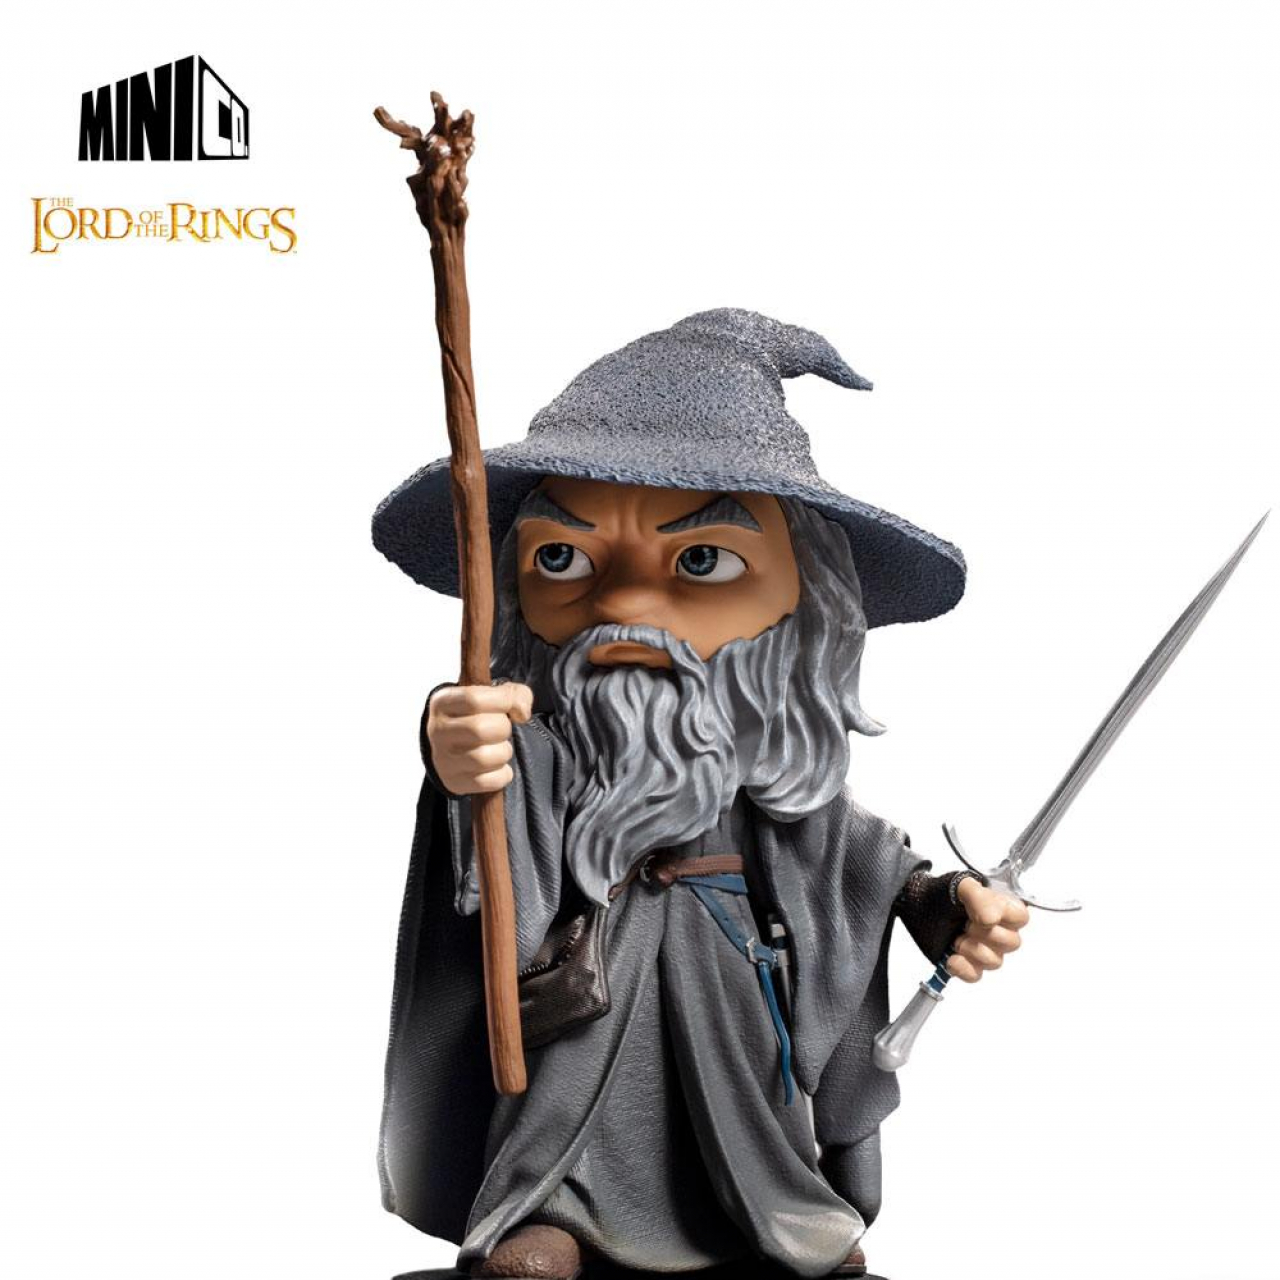 Lord of the Rings Mini Co. PVC Figure Gandalf 18 cm